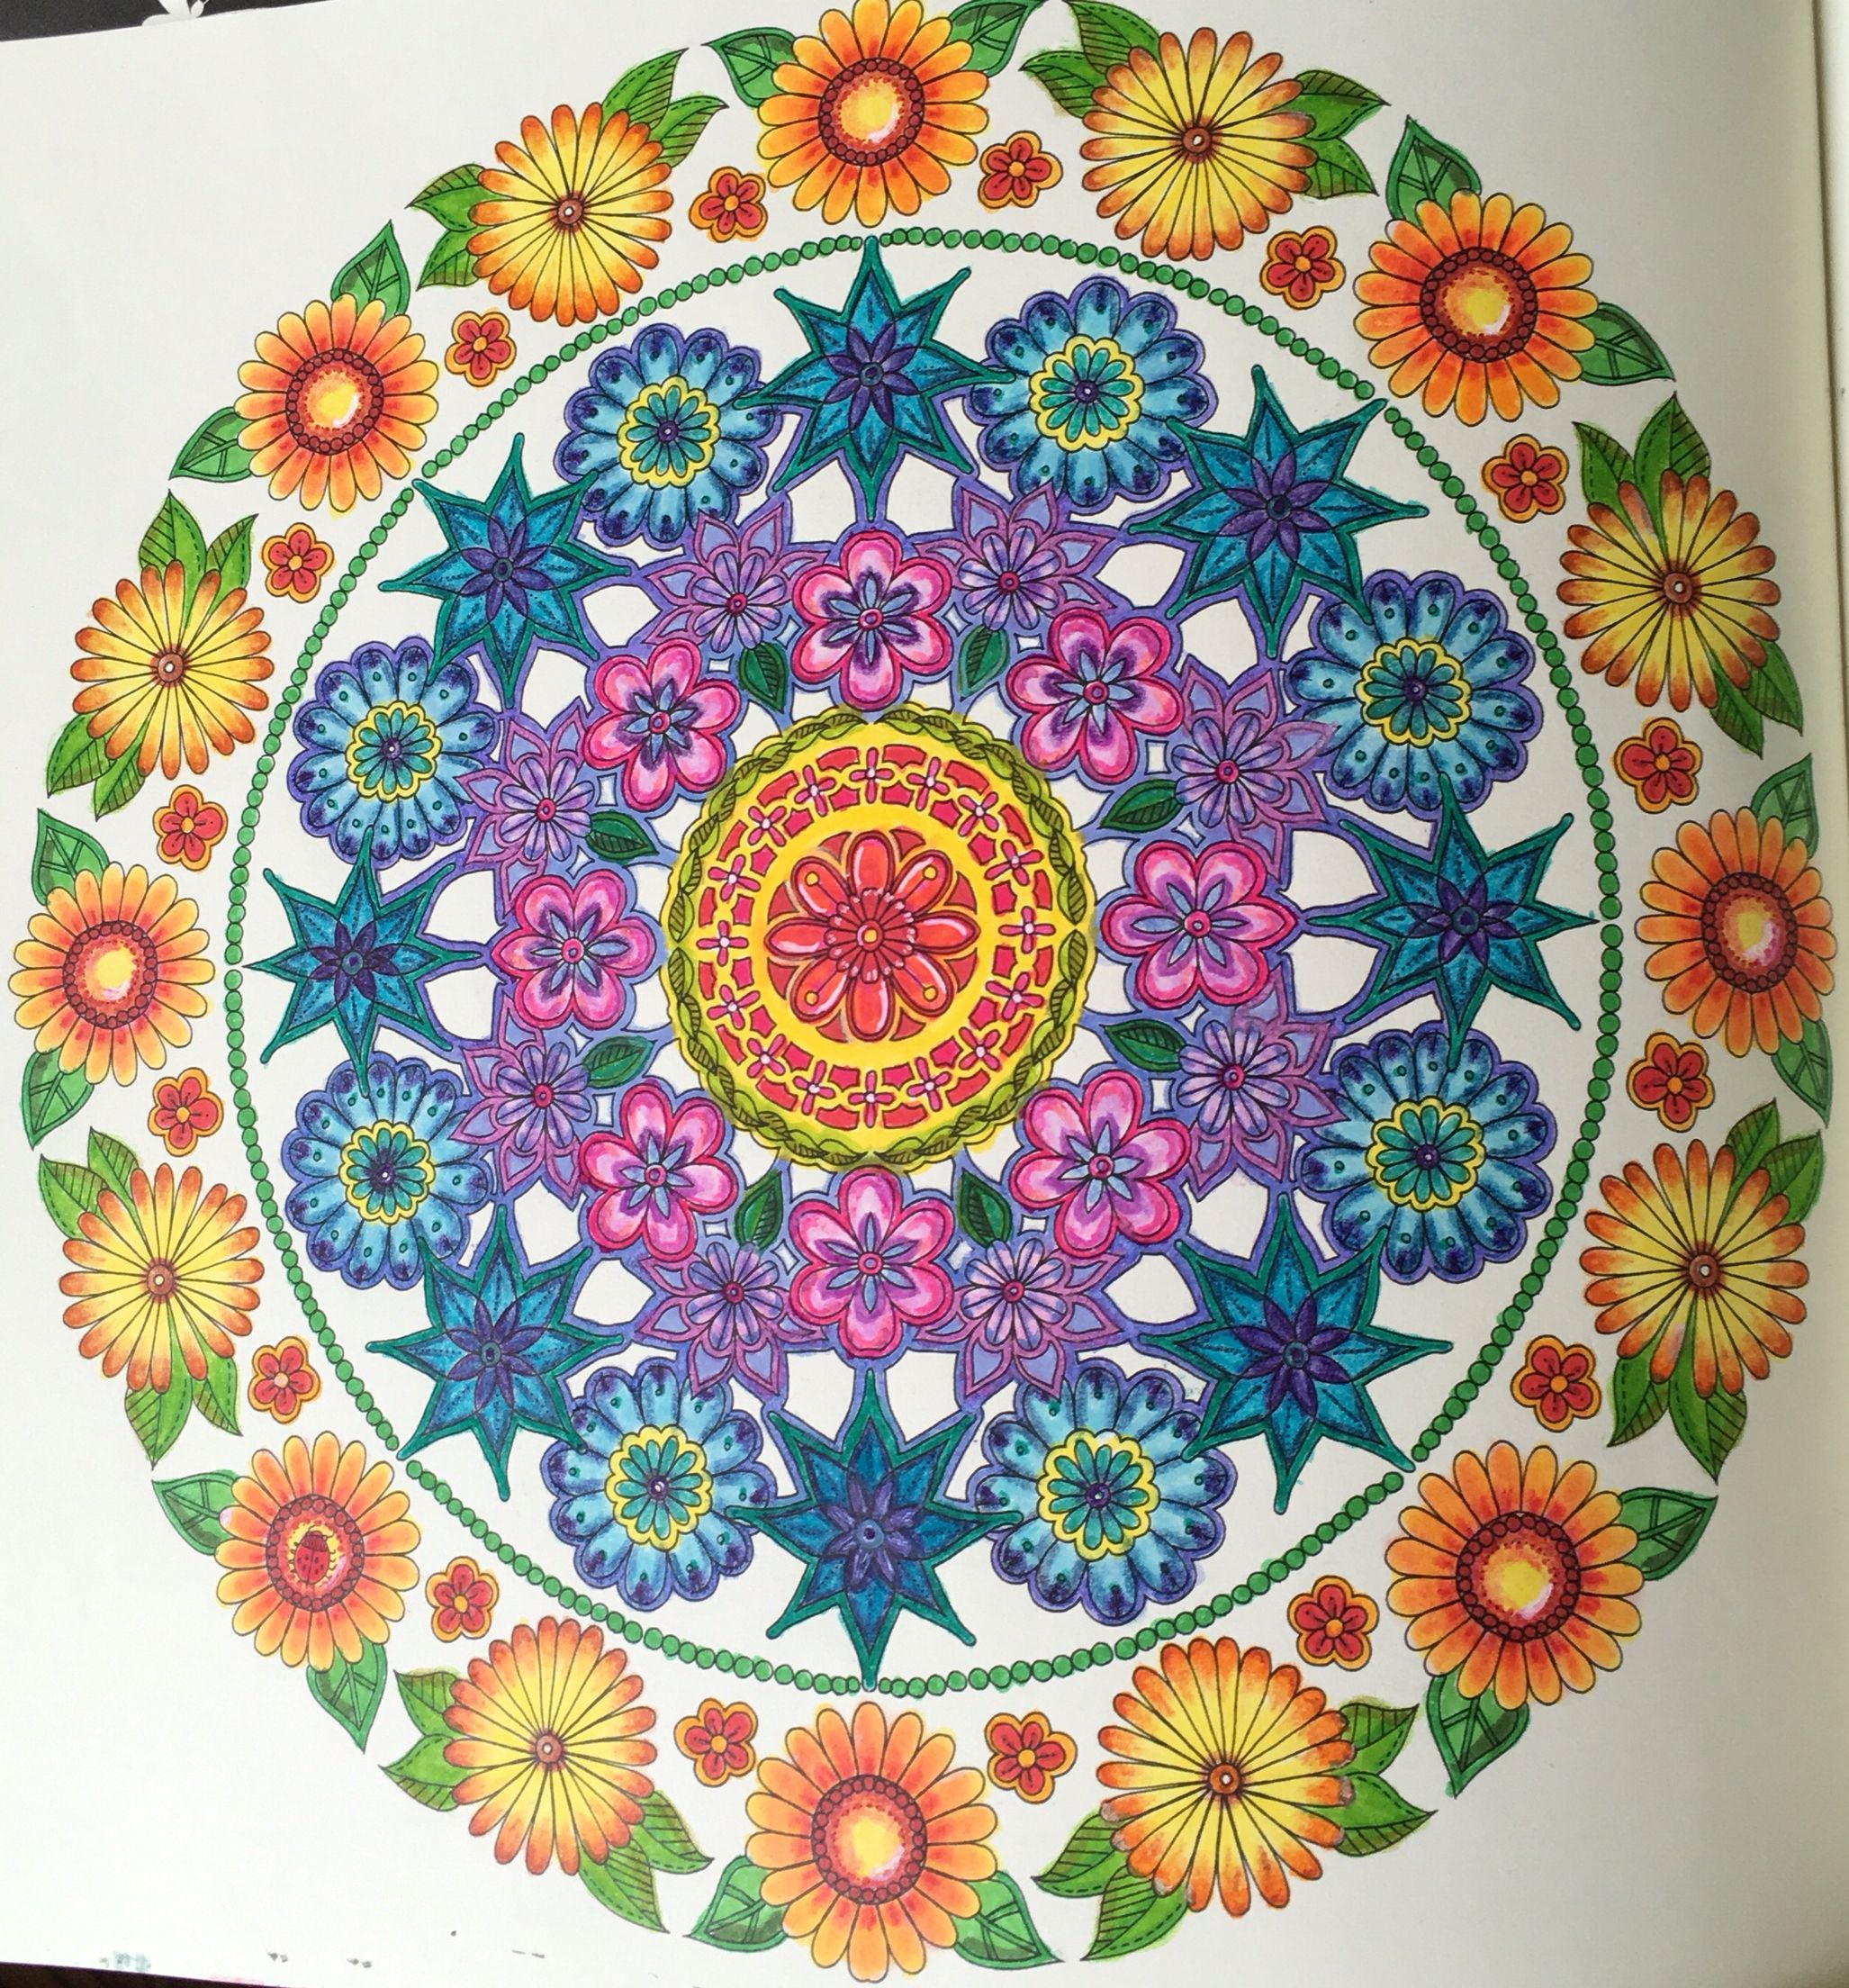 The secret garden coloring book finished - Explore Secret Garden Coloring Book And More